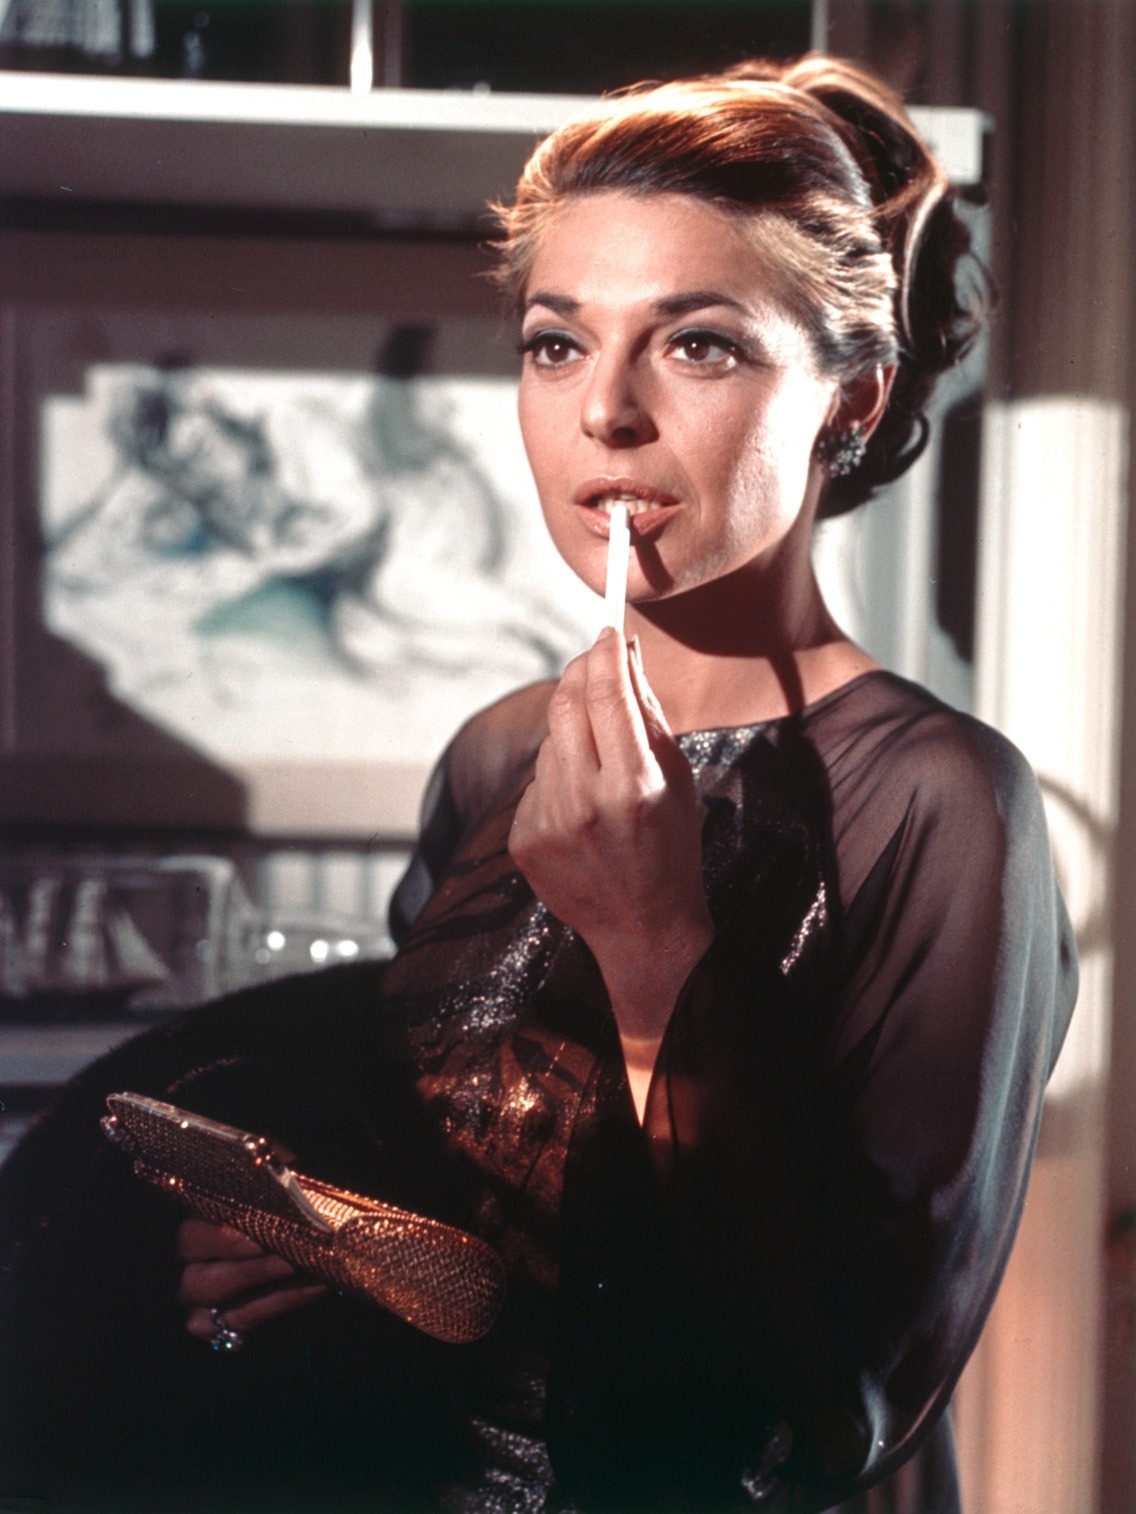 Here's to you Mrs. Robinson.